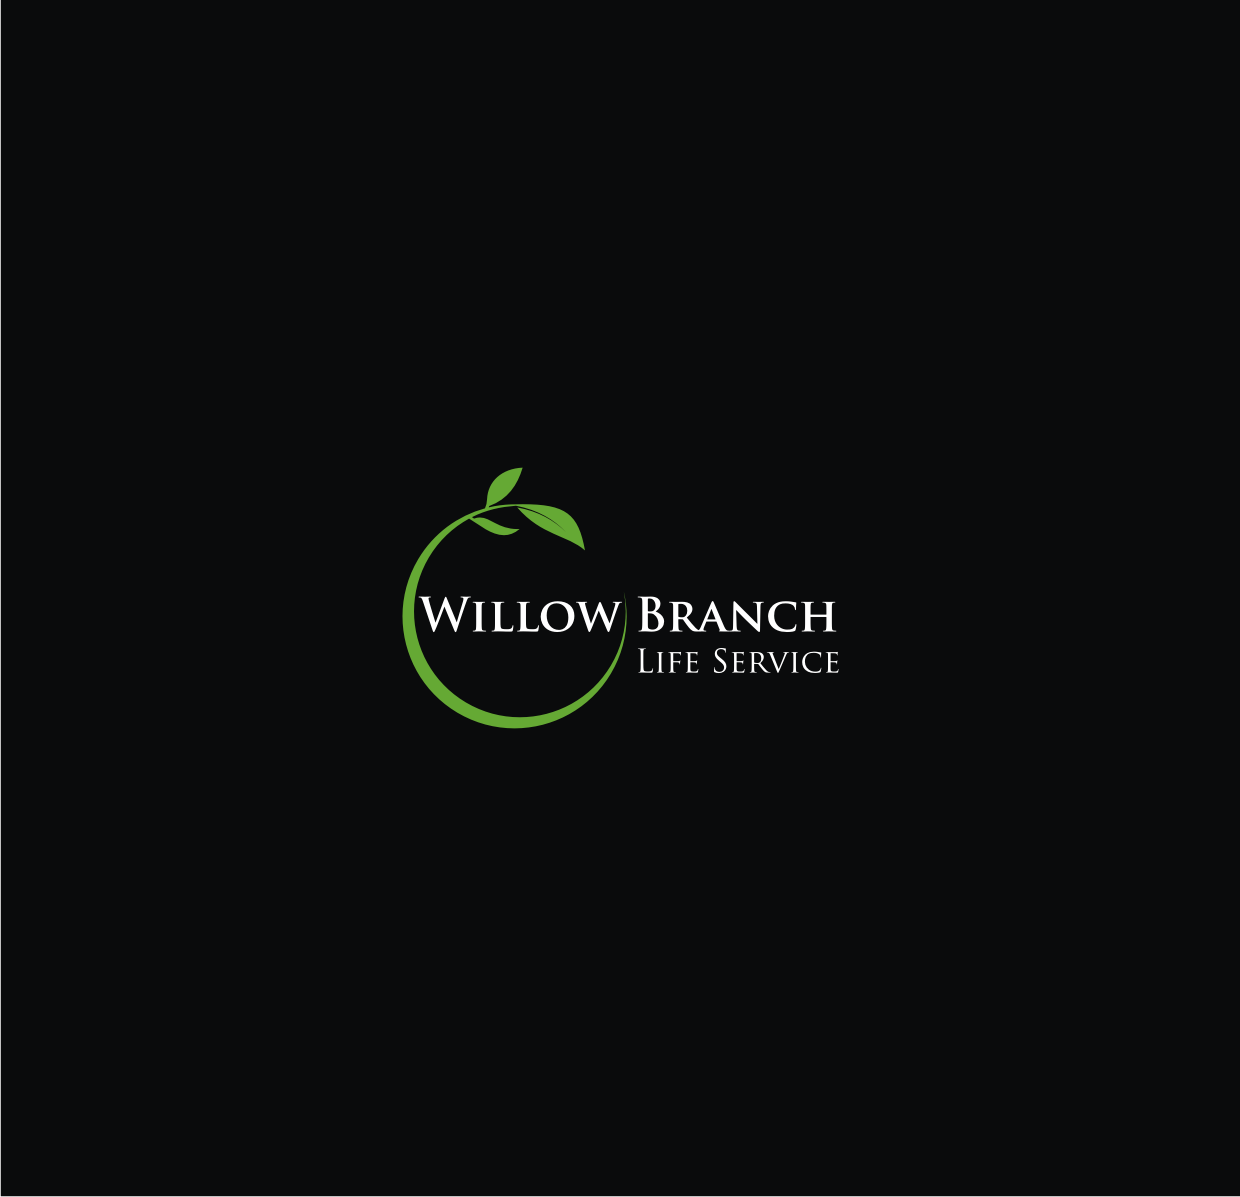 Logo Design by Sigitumarali Sigit - Entry No. 297 in the Logo Design Contest Artistic Logo Design for Willow Branch Life Service.